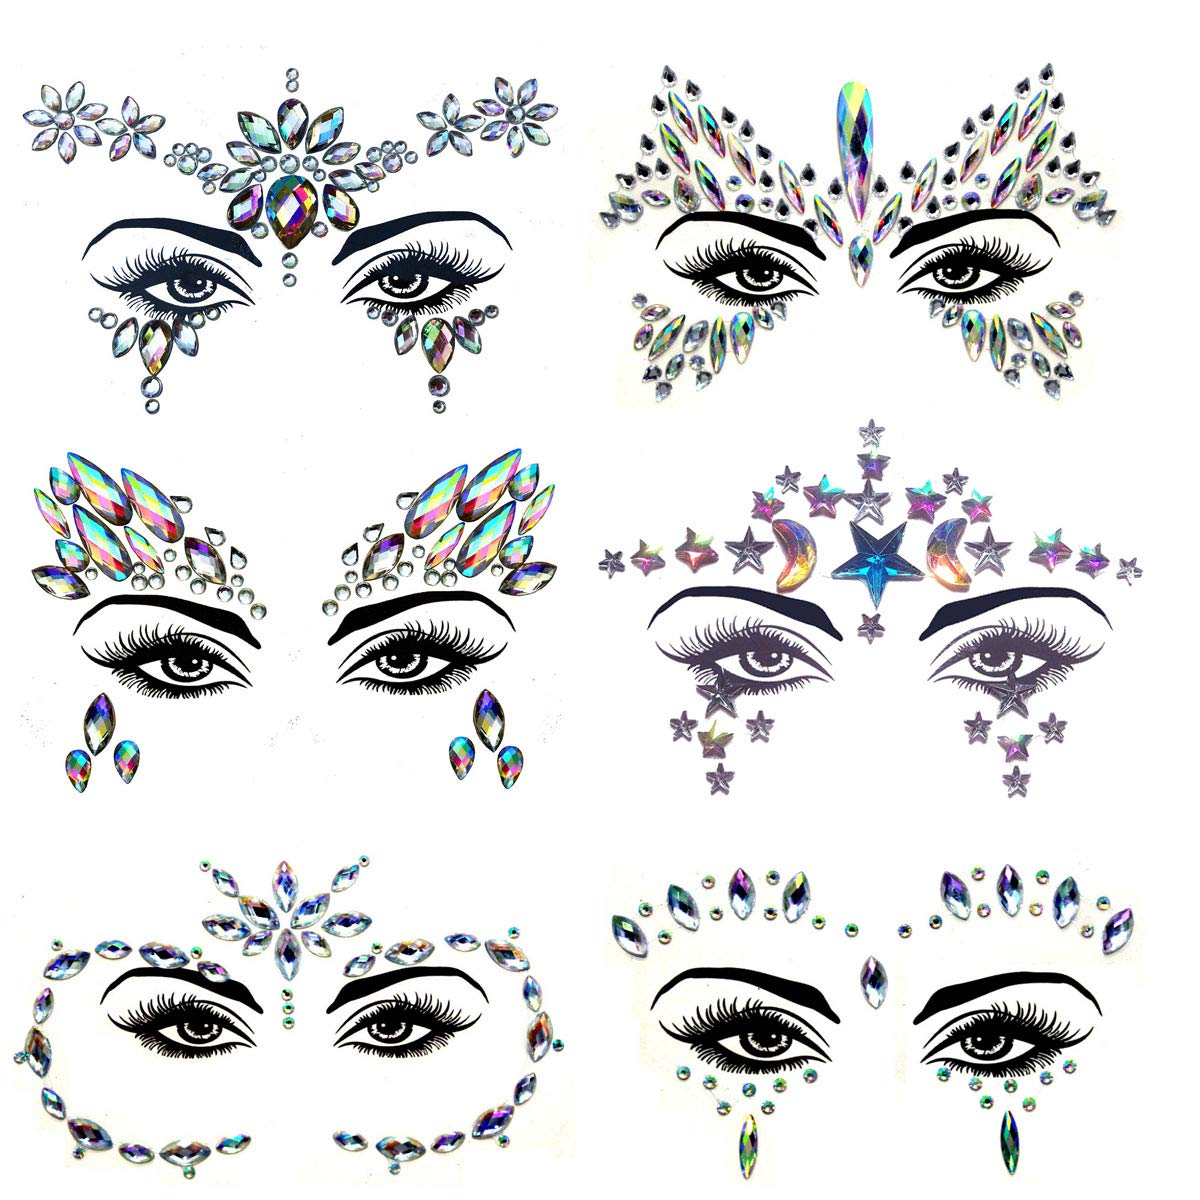 Meredmore 6Sets Festival Face Jewels stickers Body jewels stickers Glitter Rave Face Gems Rhinestones – Eye Body Gems | Rhinestone Stickers | Body Glitter Festival Rave & Party Accessories